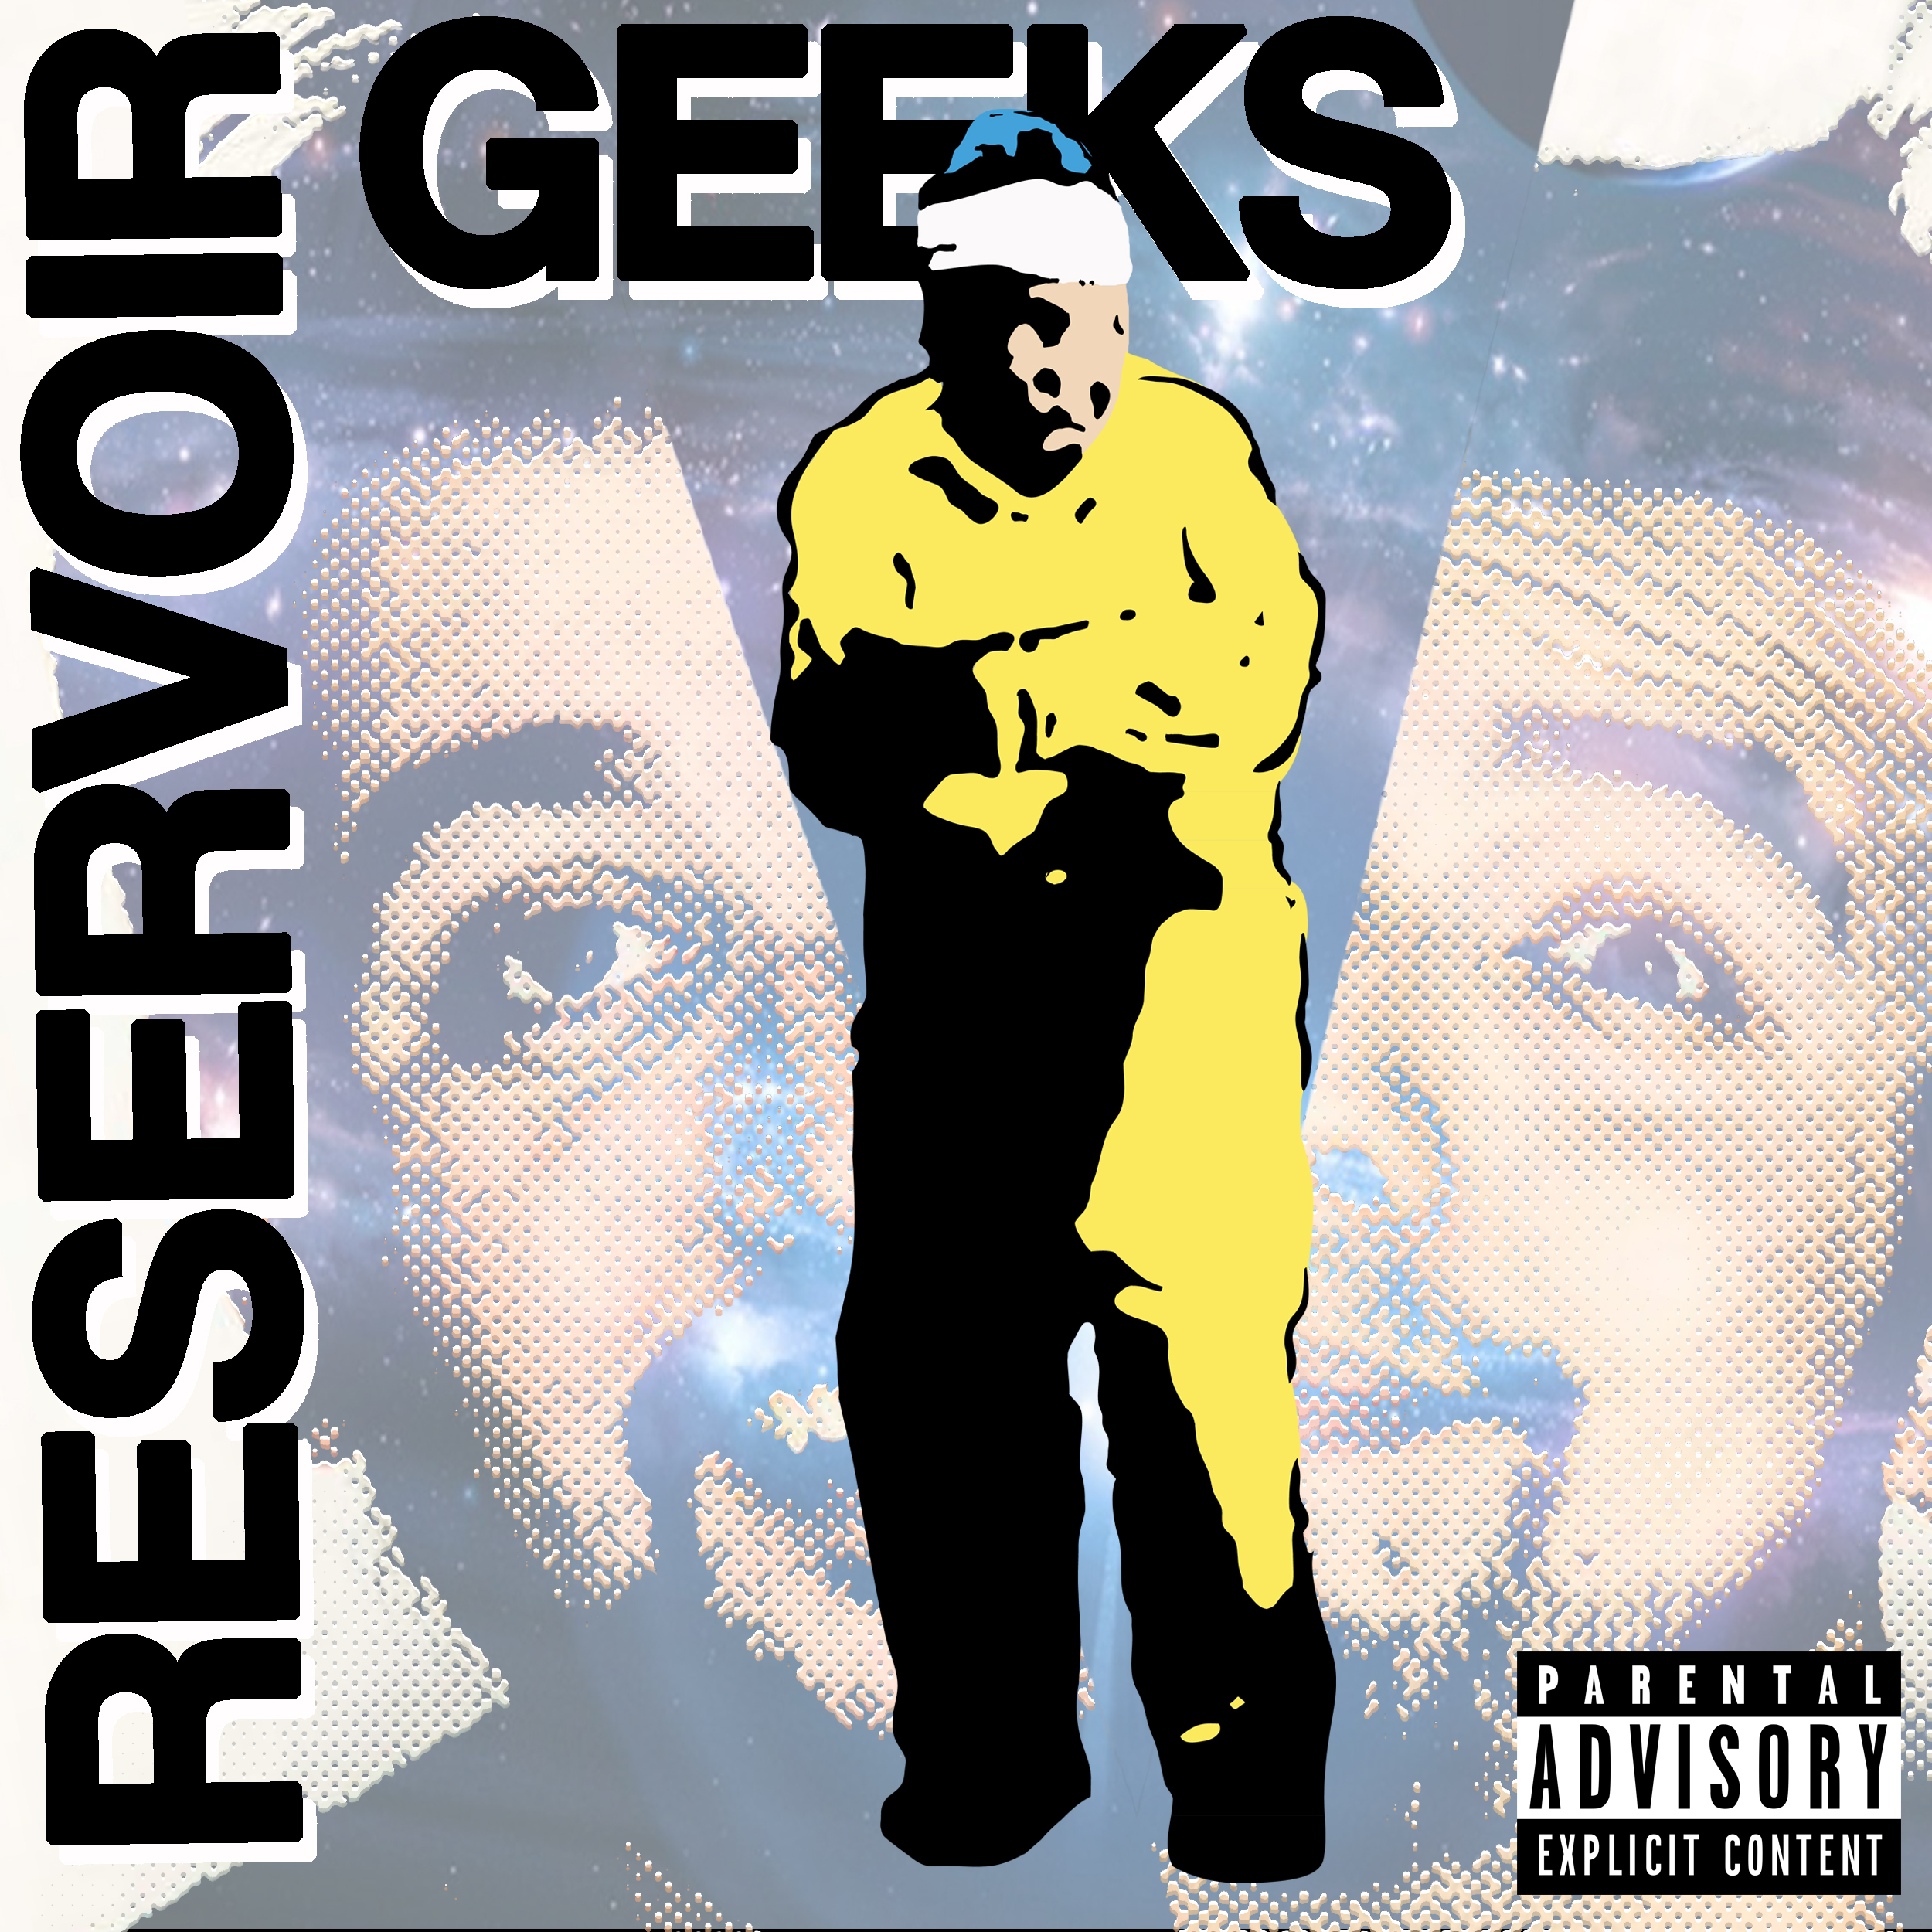 Check Out EP16! - CLICK HERE TO HIT THE LINK AND ENJOY!Chris, Andy and Doug get together in the NEW Reservoir Geeks studio to lay down some Christmas goodness. They talk all about their favorite Christmas movies, TV show and commercials and also reminisce about their best Christmas memories. As usual, it wouldn't be a Reservoir Geeks episode if they didn't go off topic a few times and these references are HYPER-local but still HYPER-relatable. ENJOY!